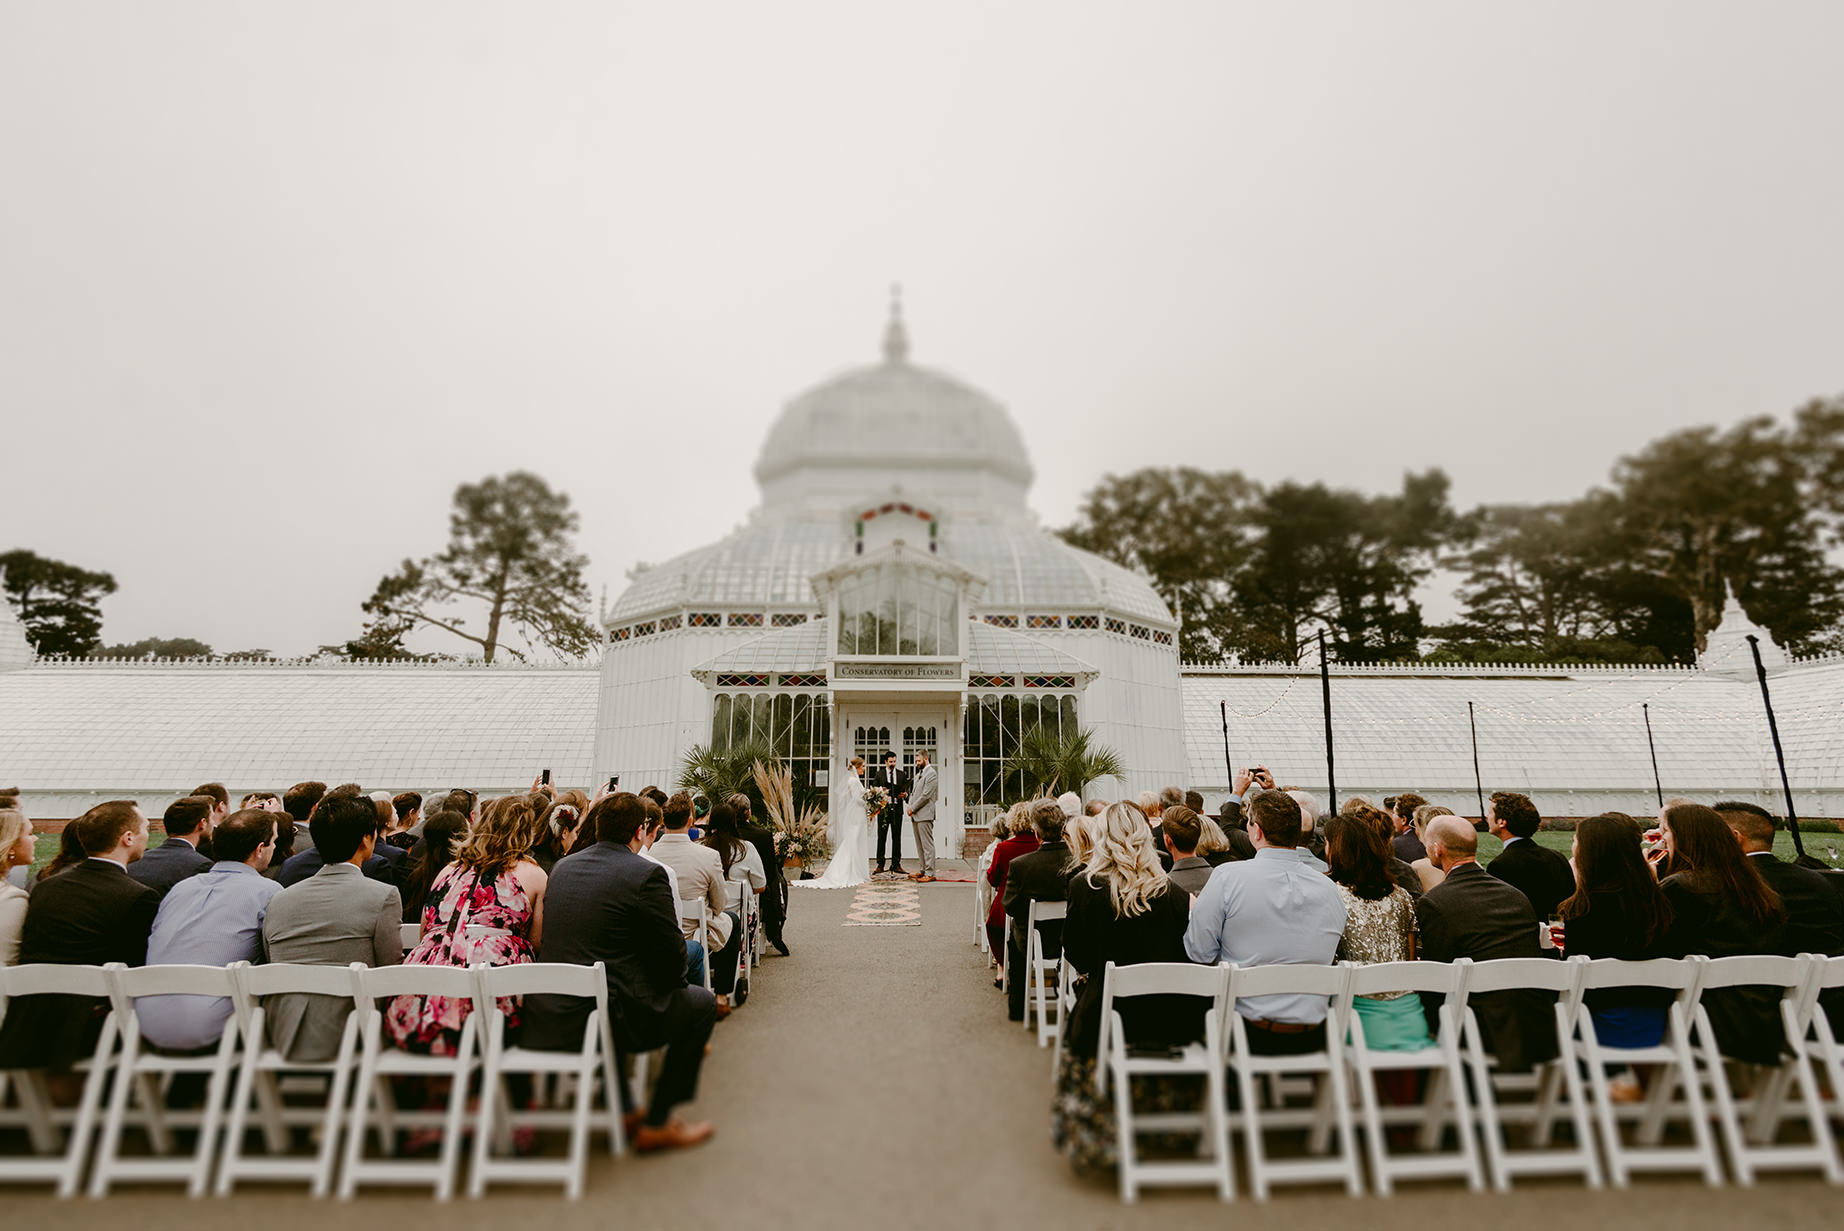 Ceremony at Conservatory of Flowers. Photo by Julie Pepin.